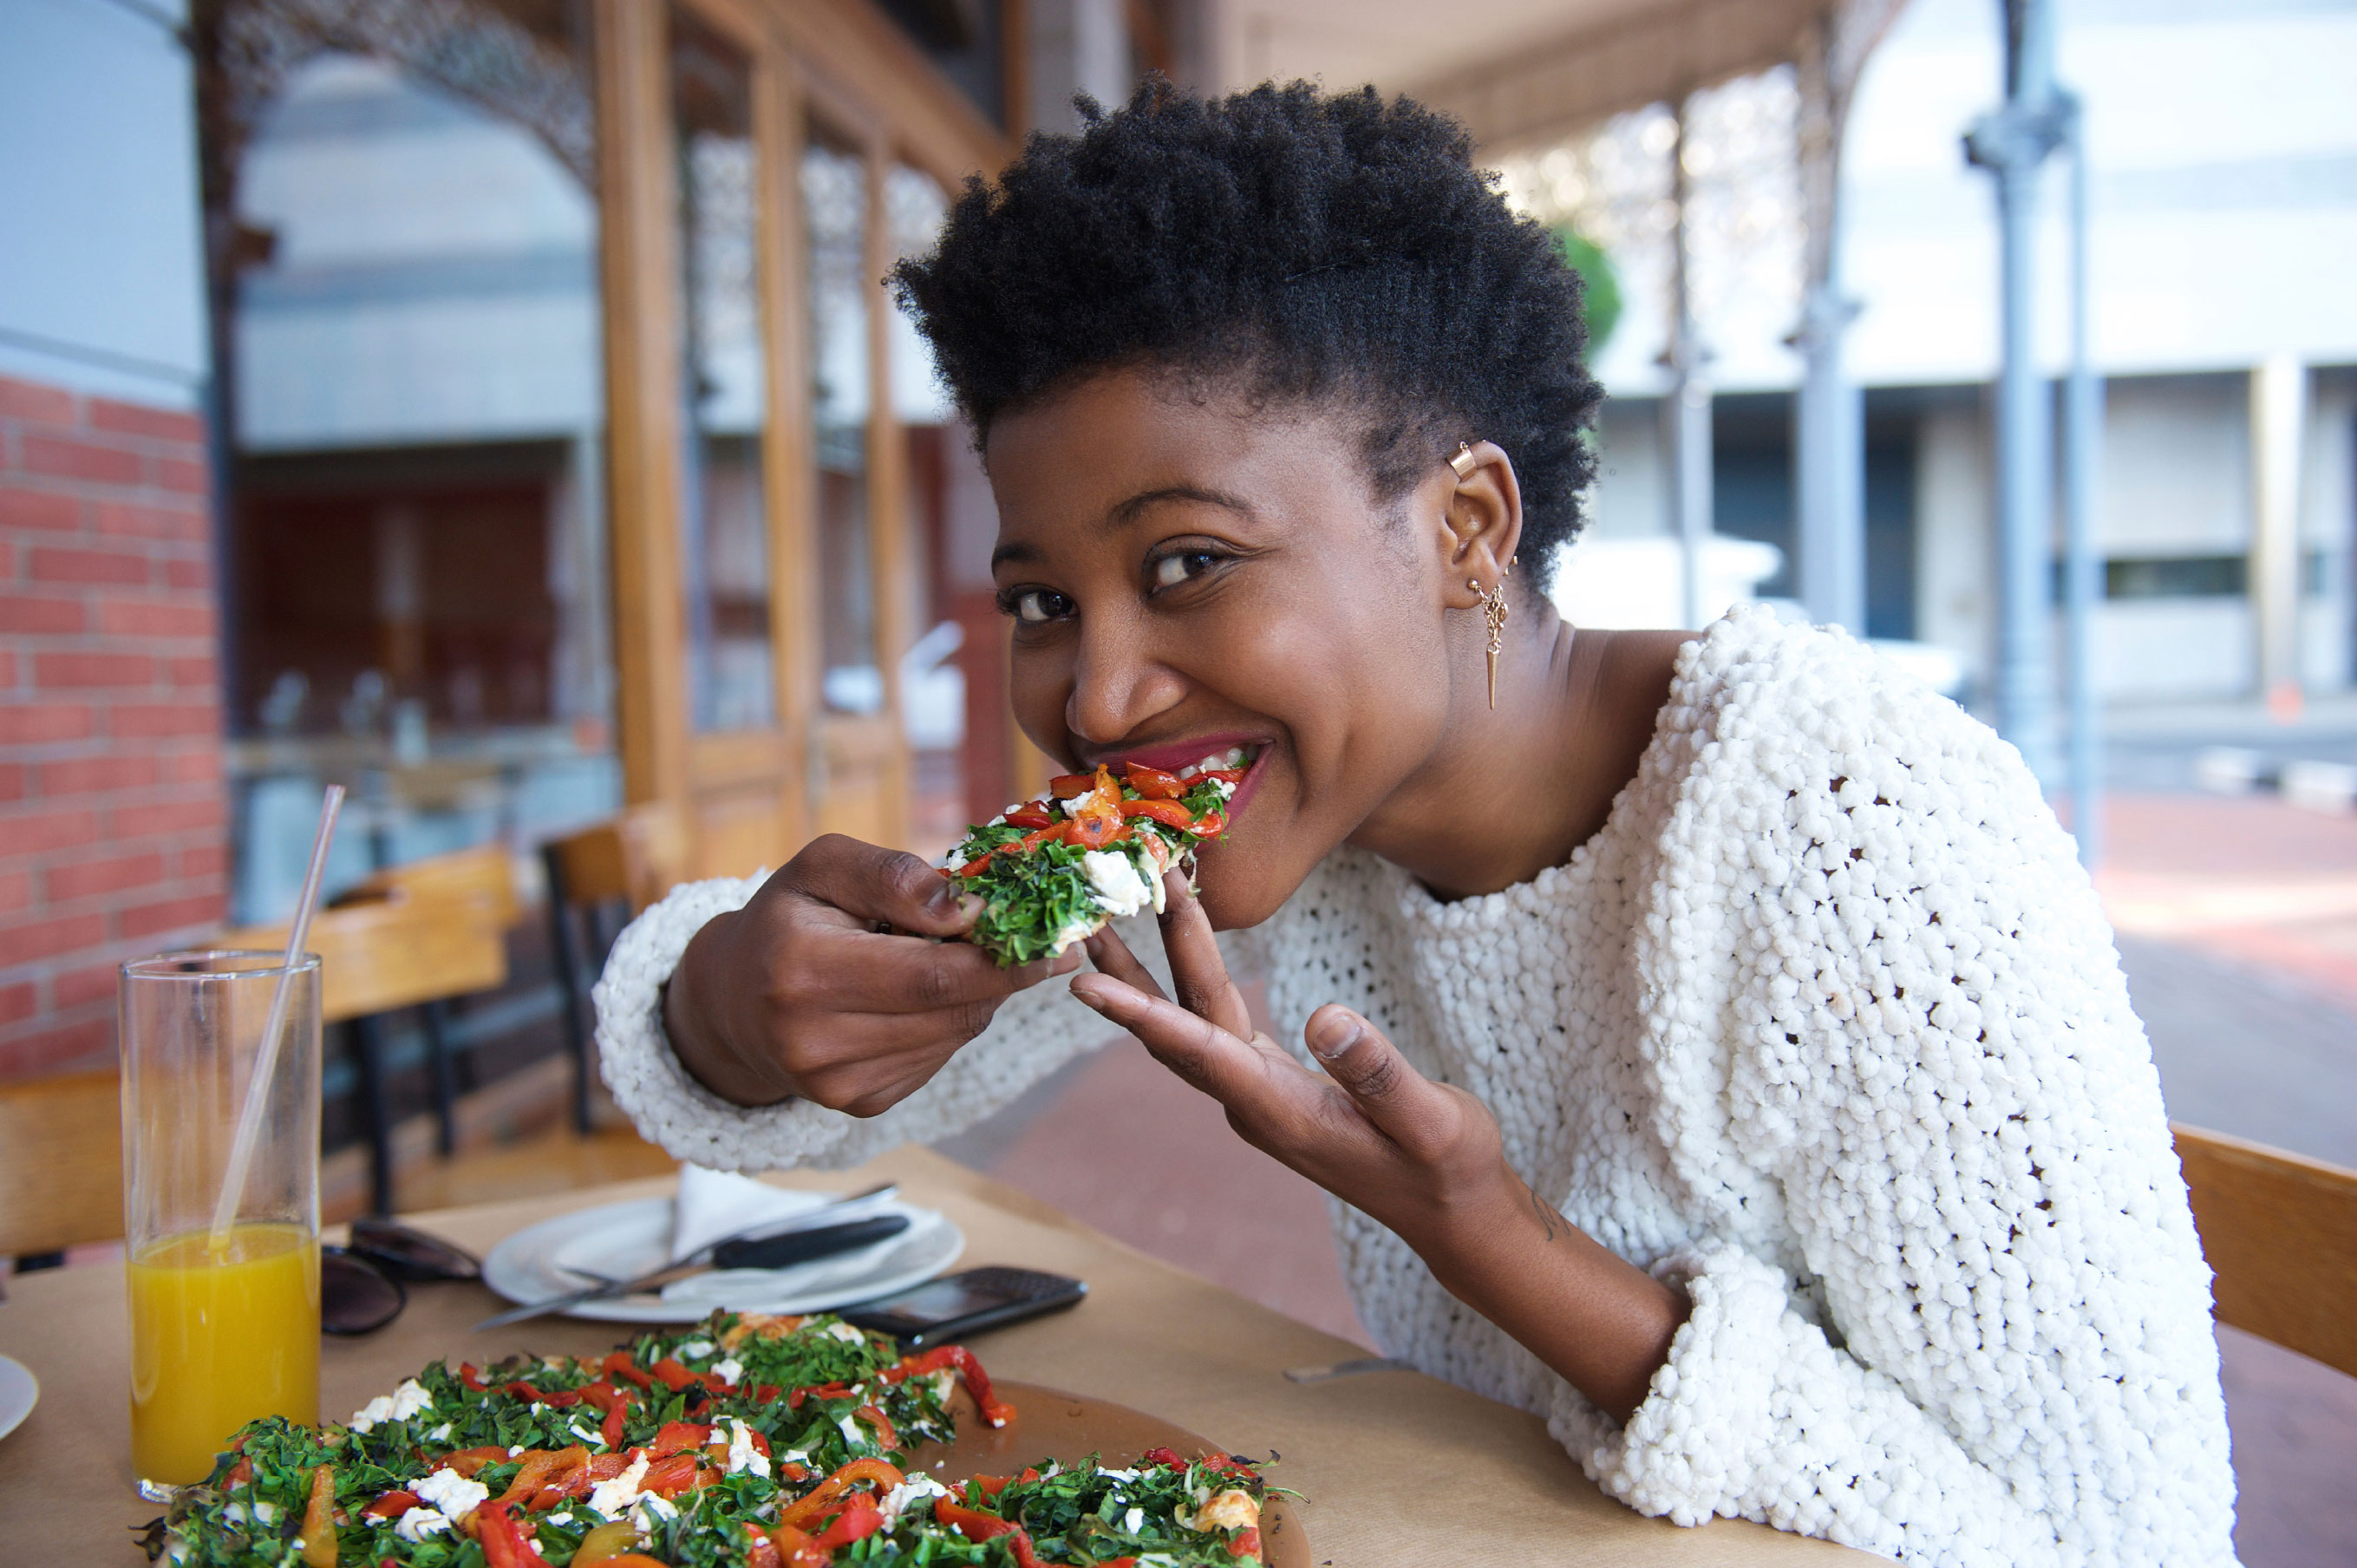 Young woman eating vegetarian pizza